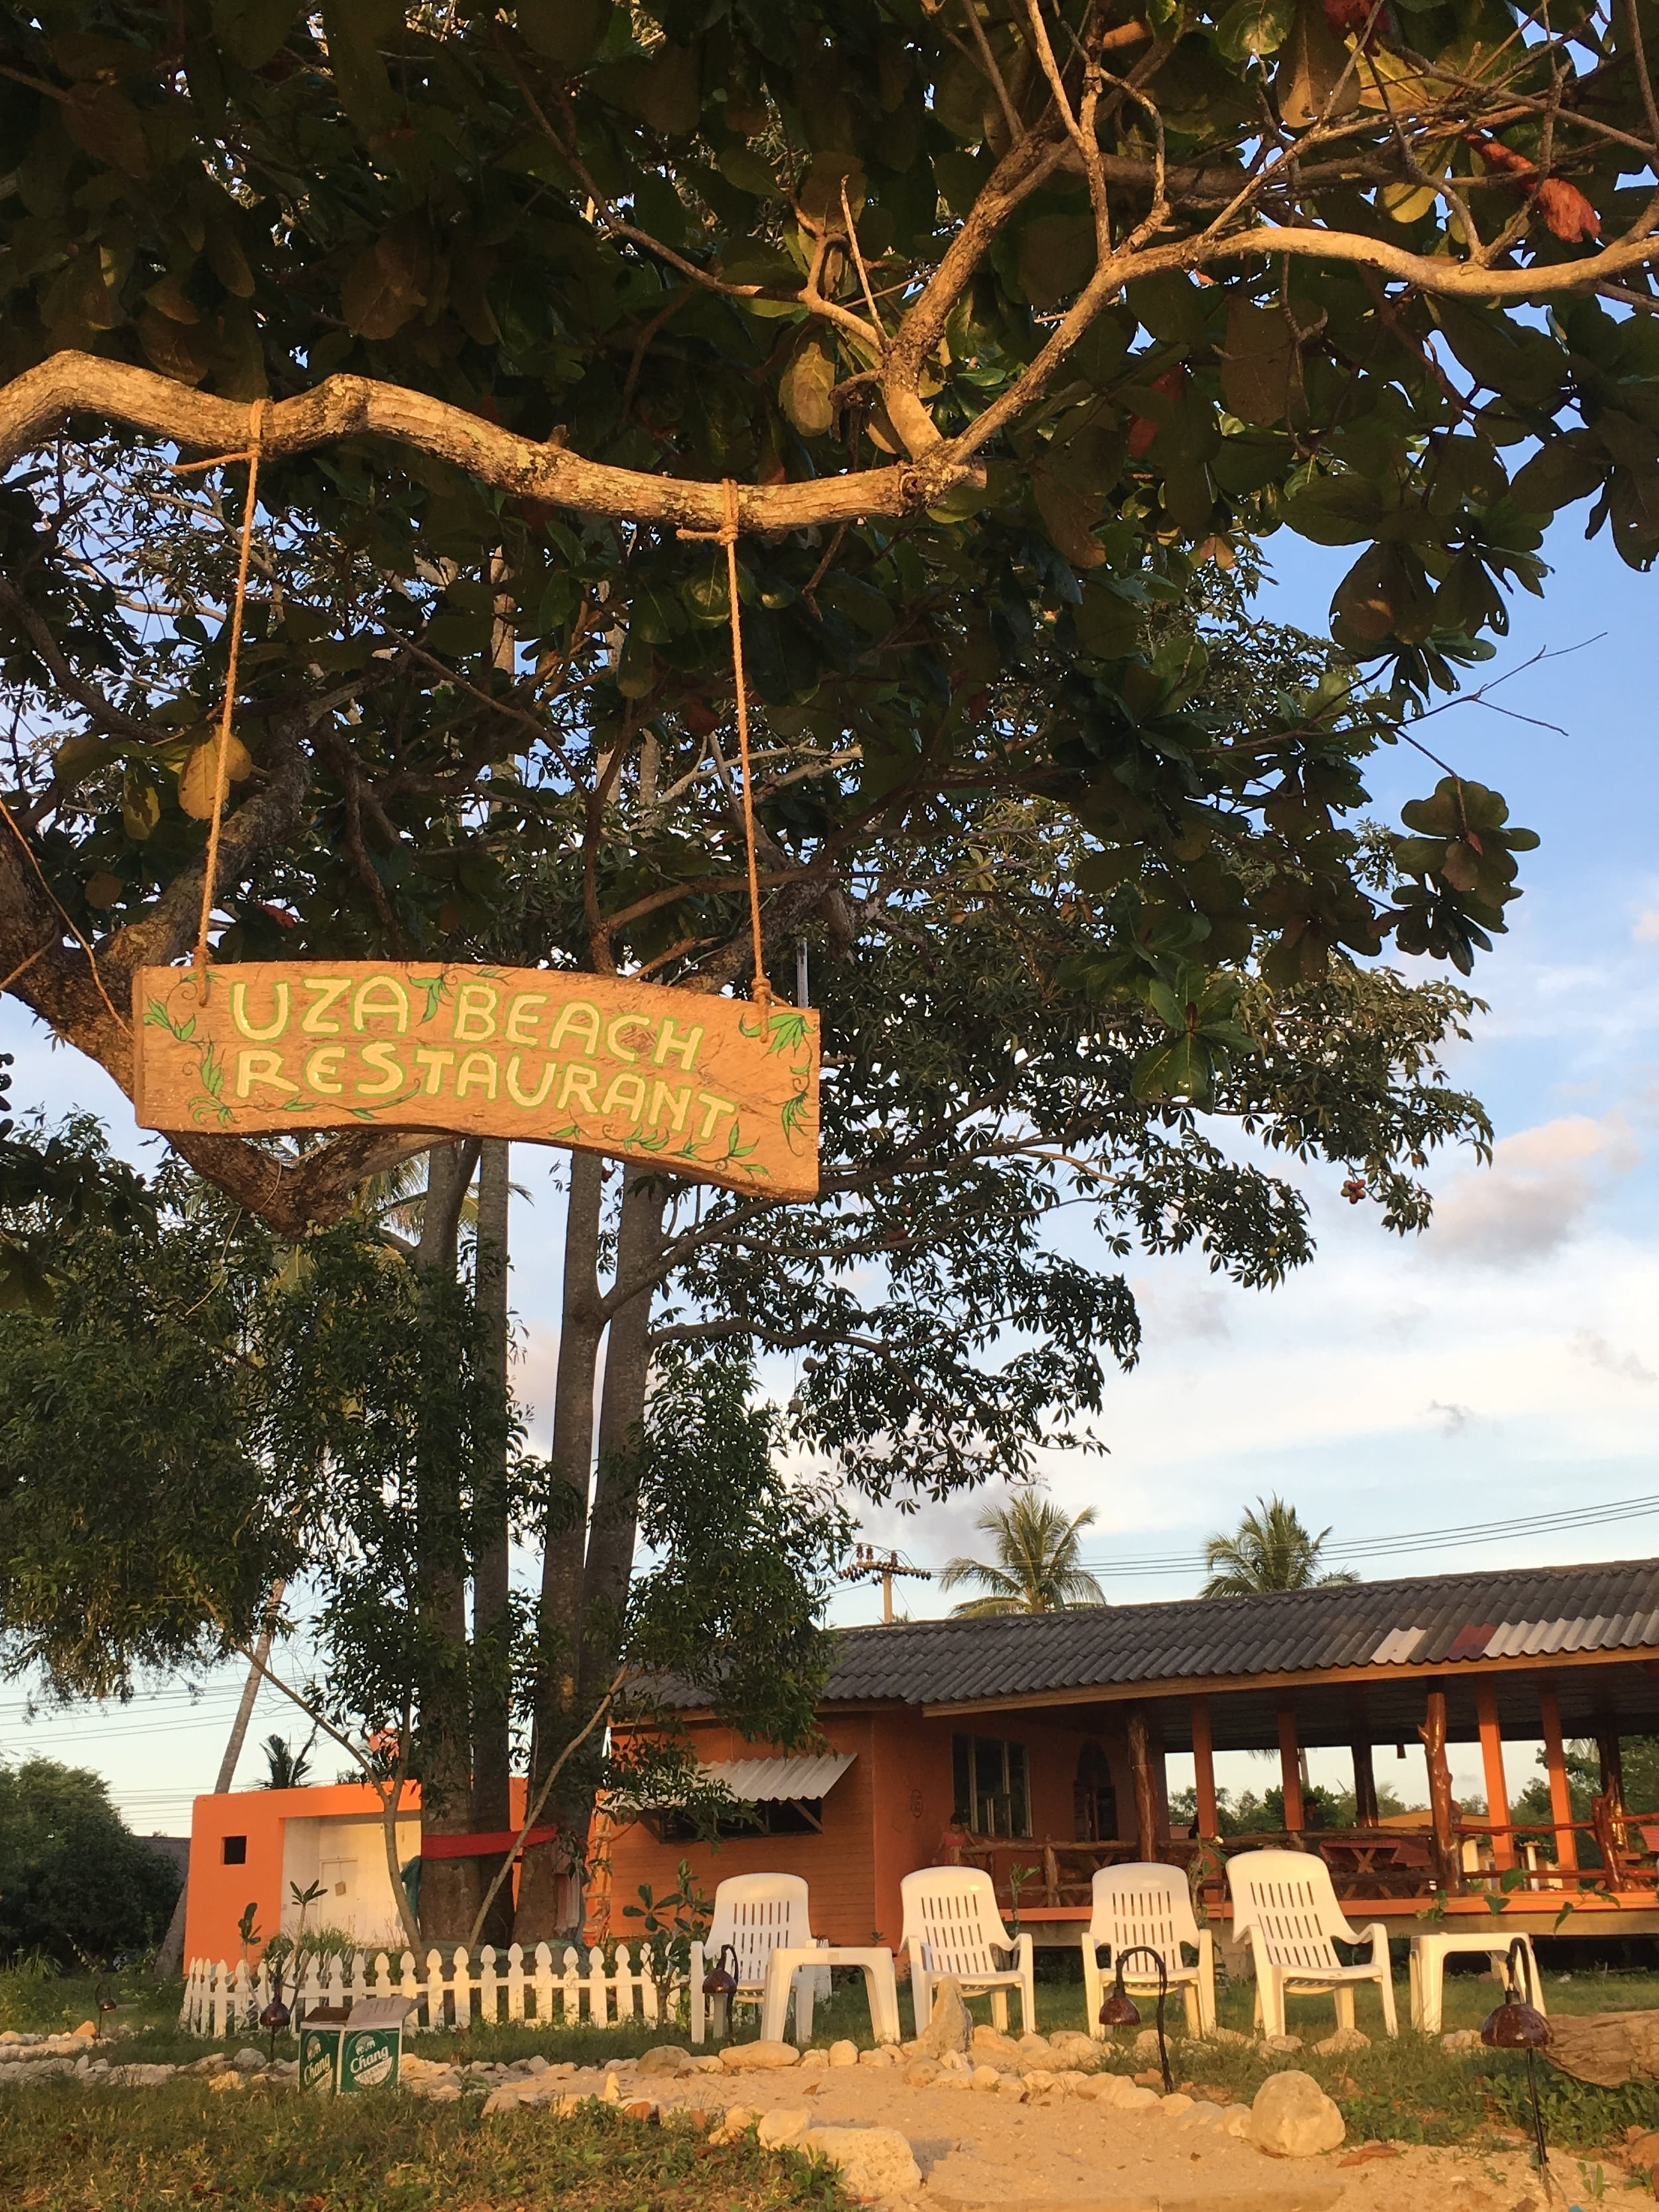 The hanging sign highlighting our restaurant.  This picture was taken from the beach.